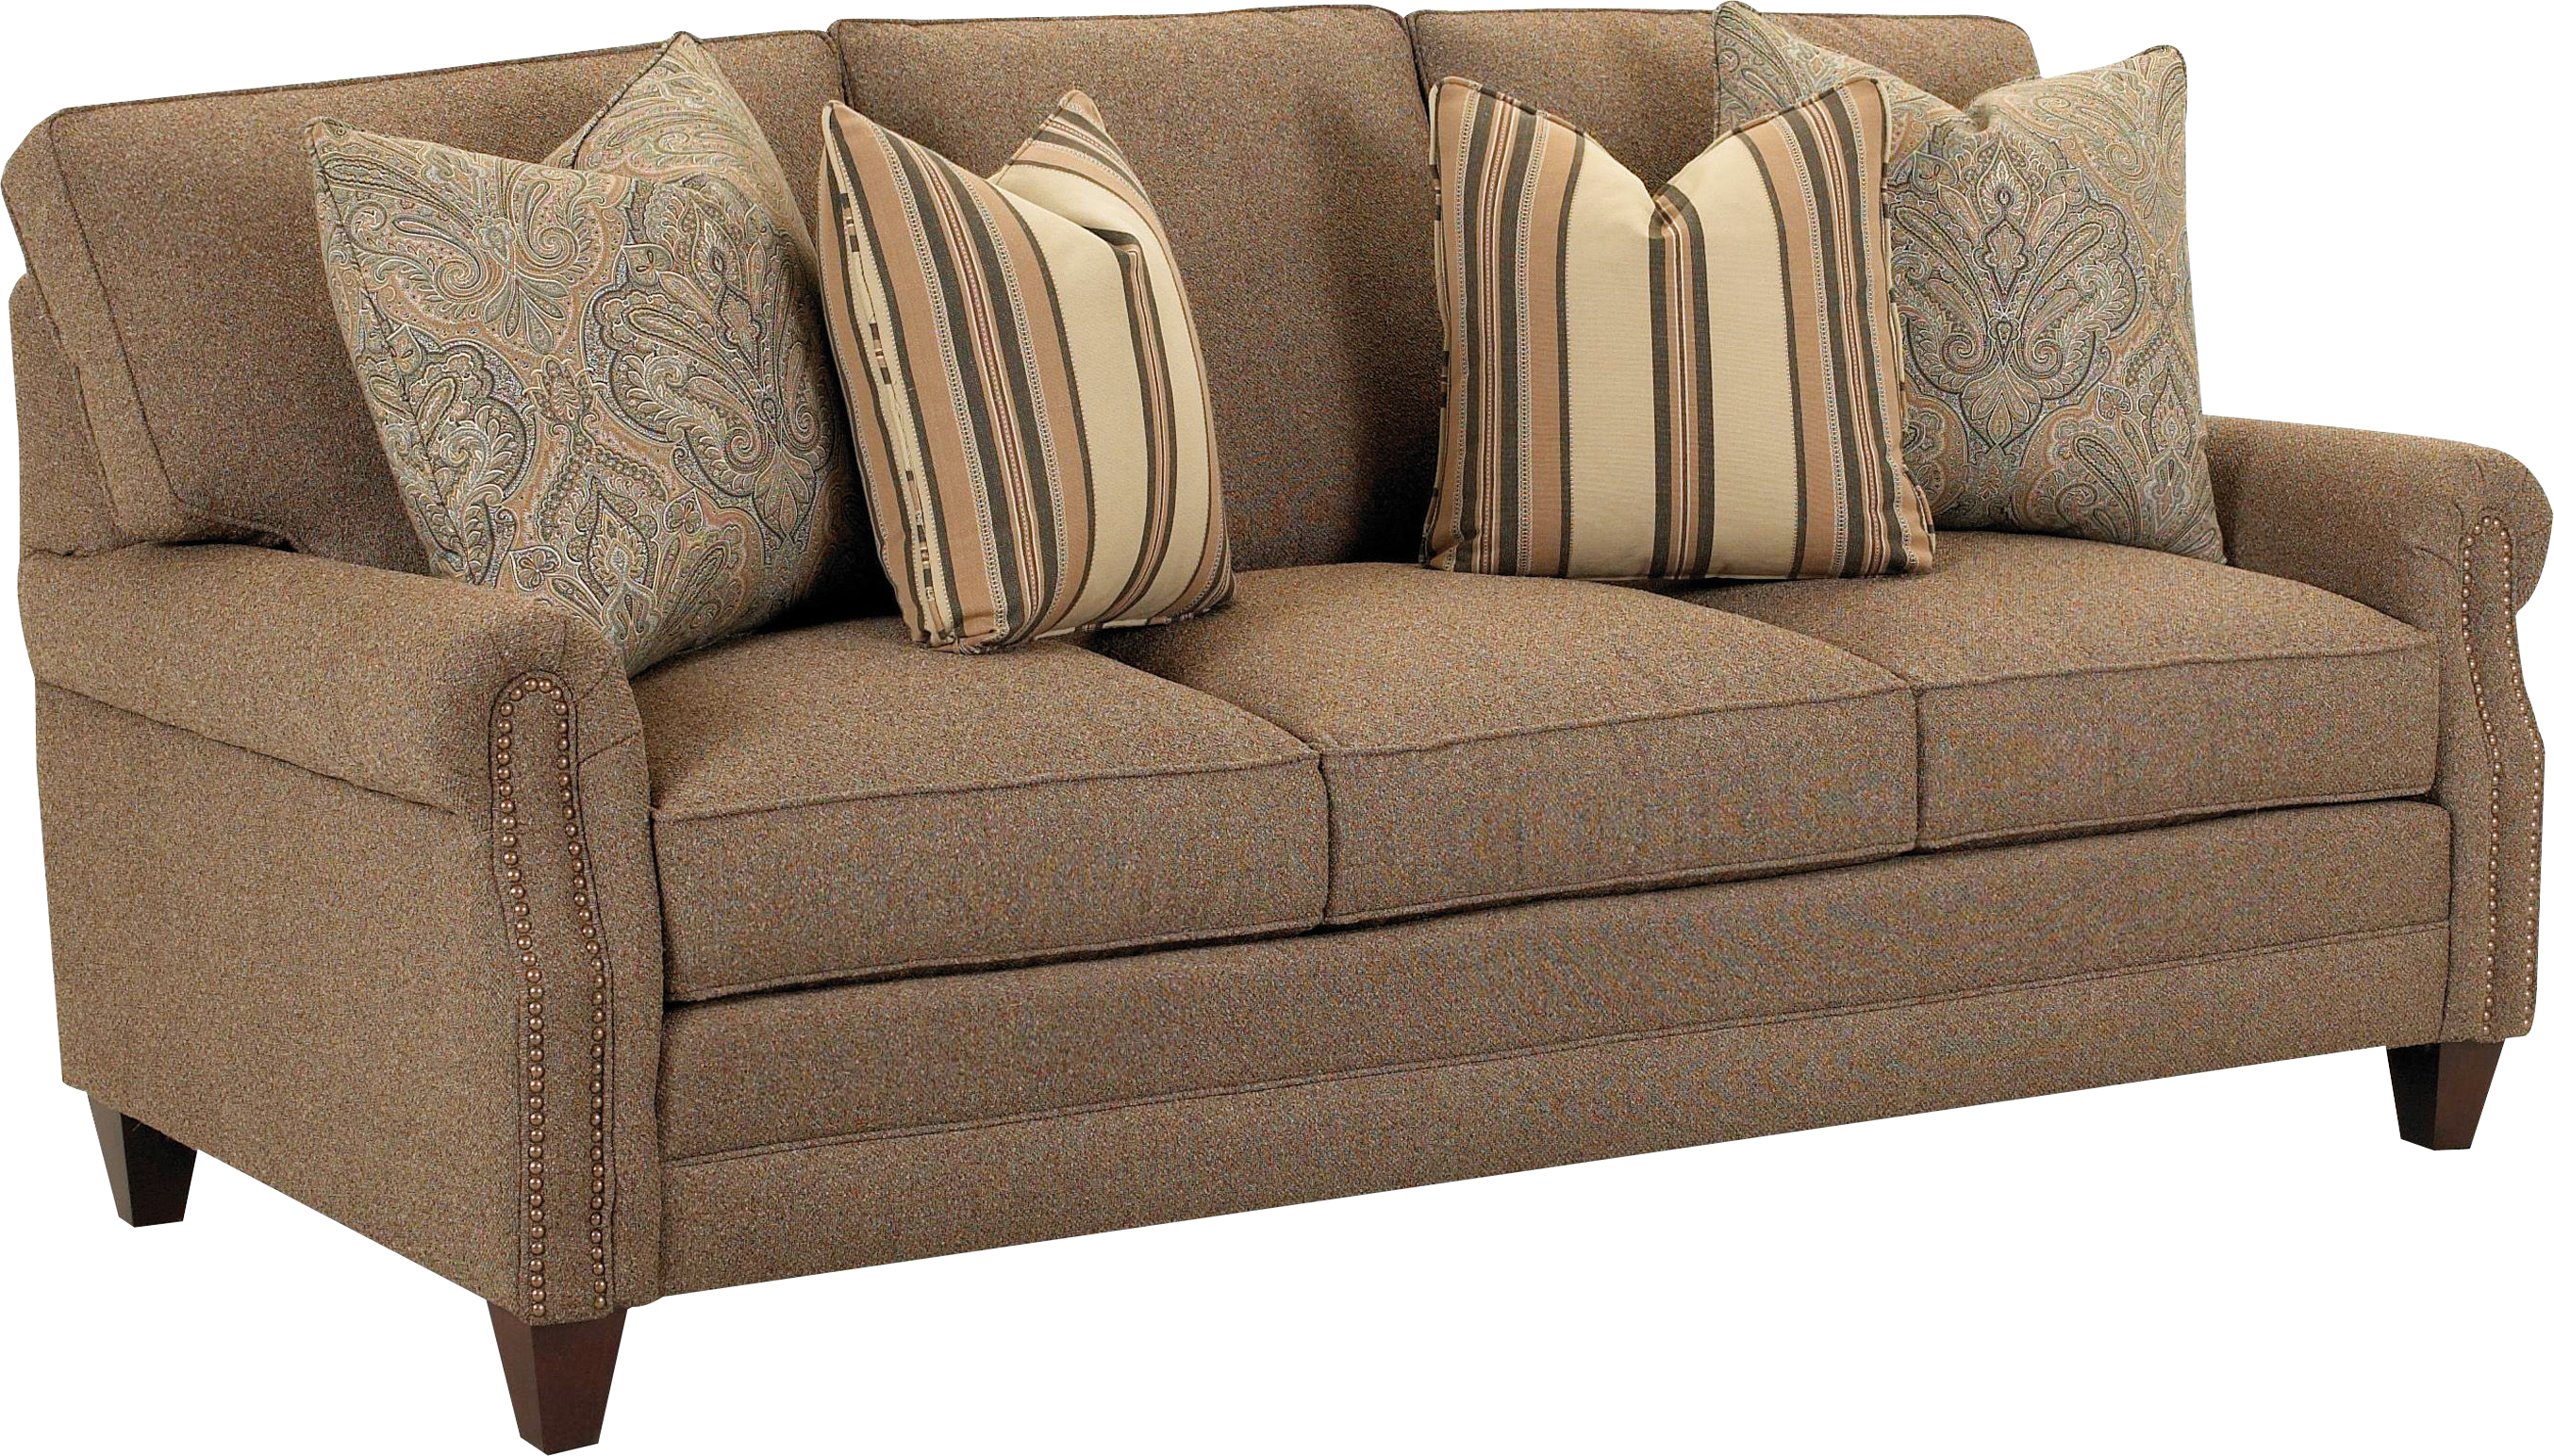 1496091487sofa hd furniture png transparent - R.D.C. Recurring